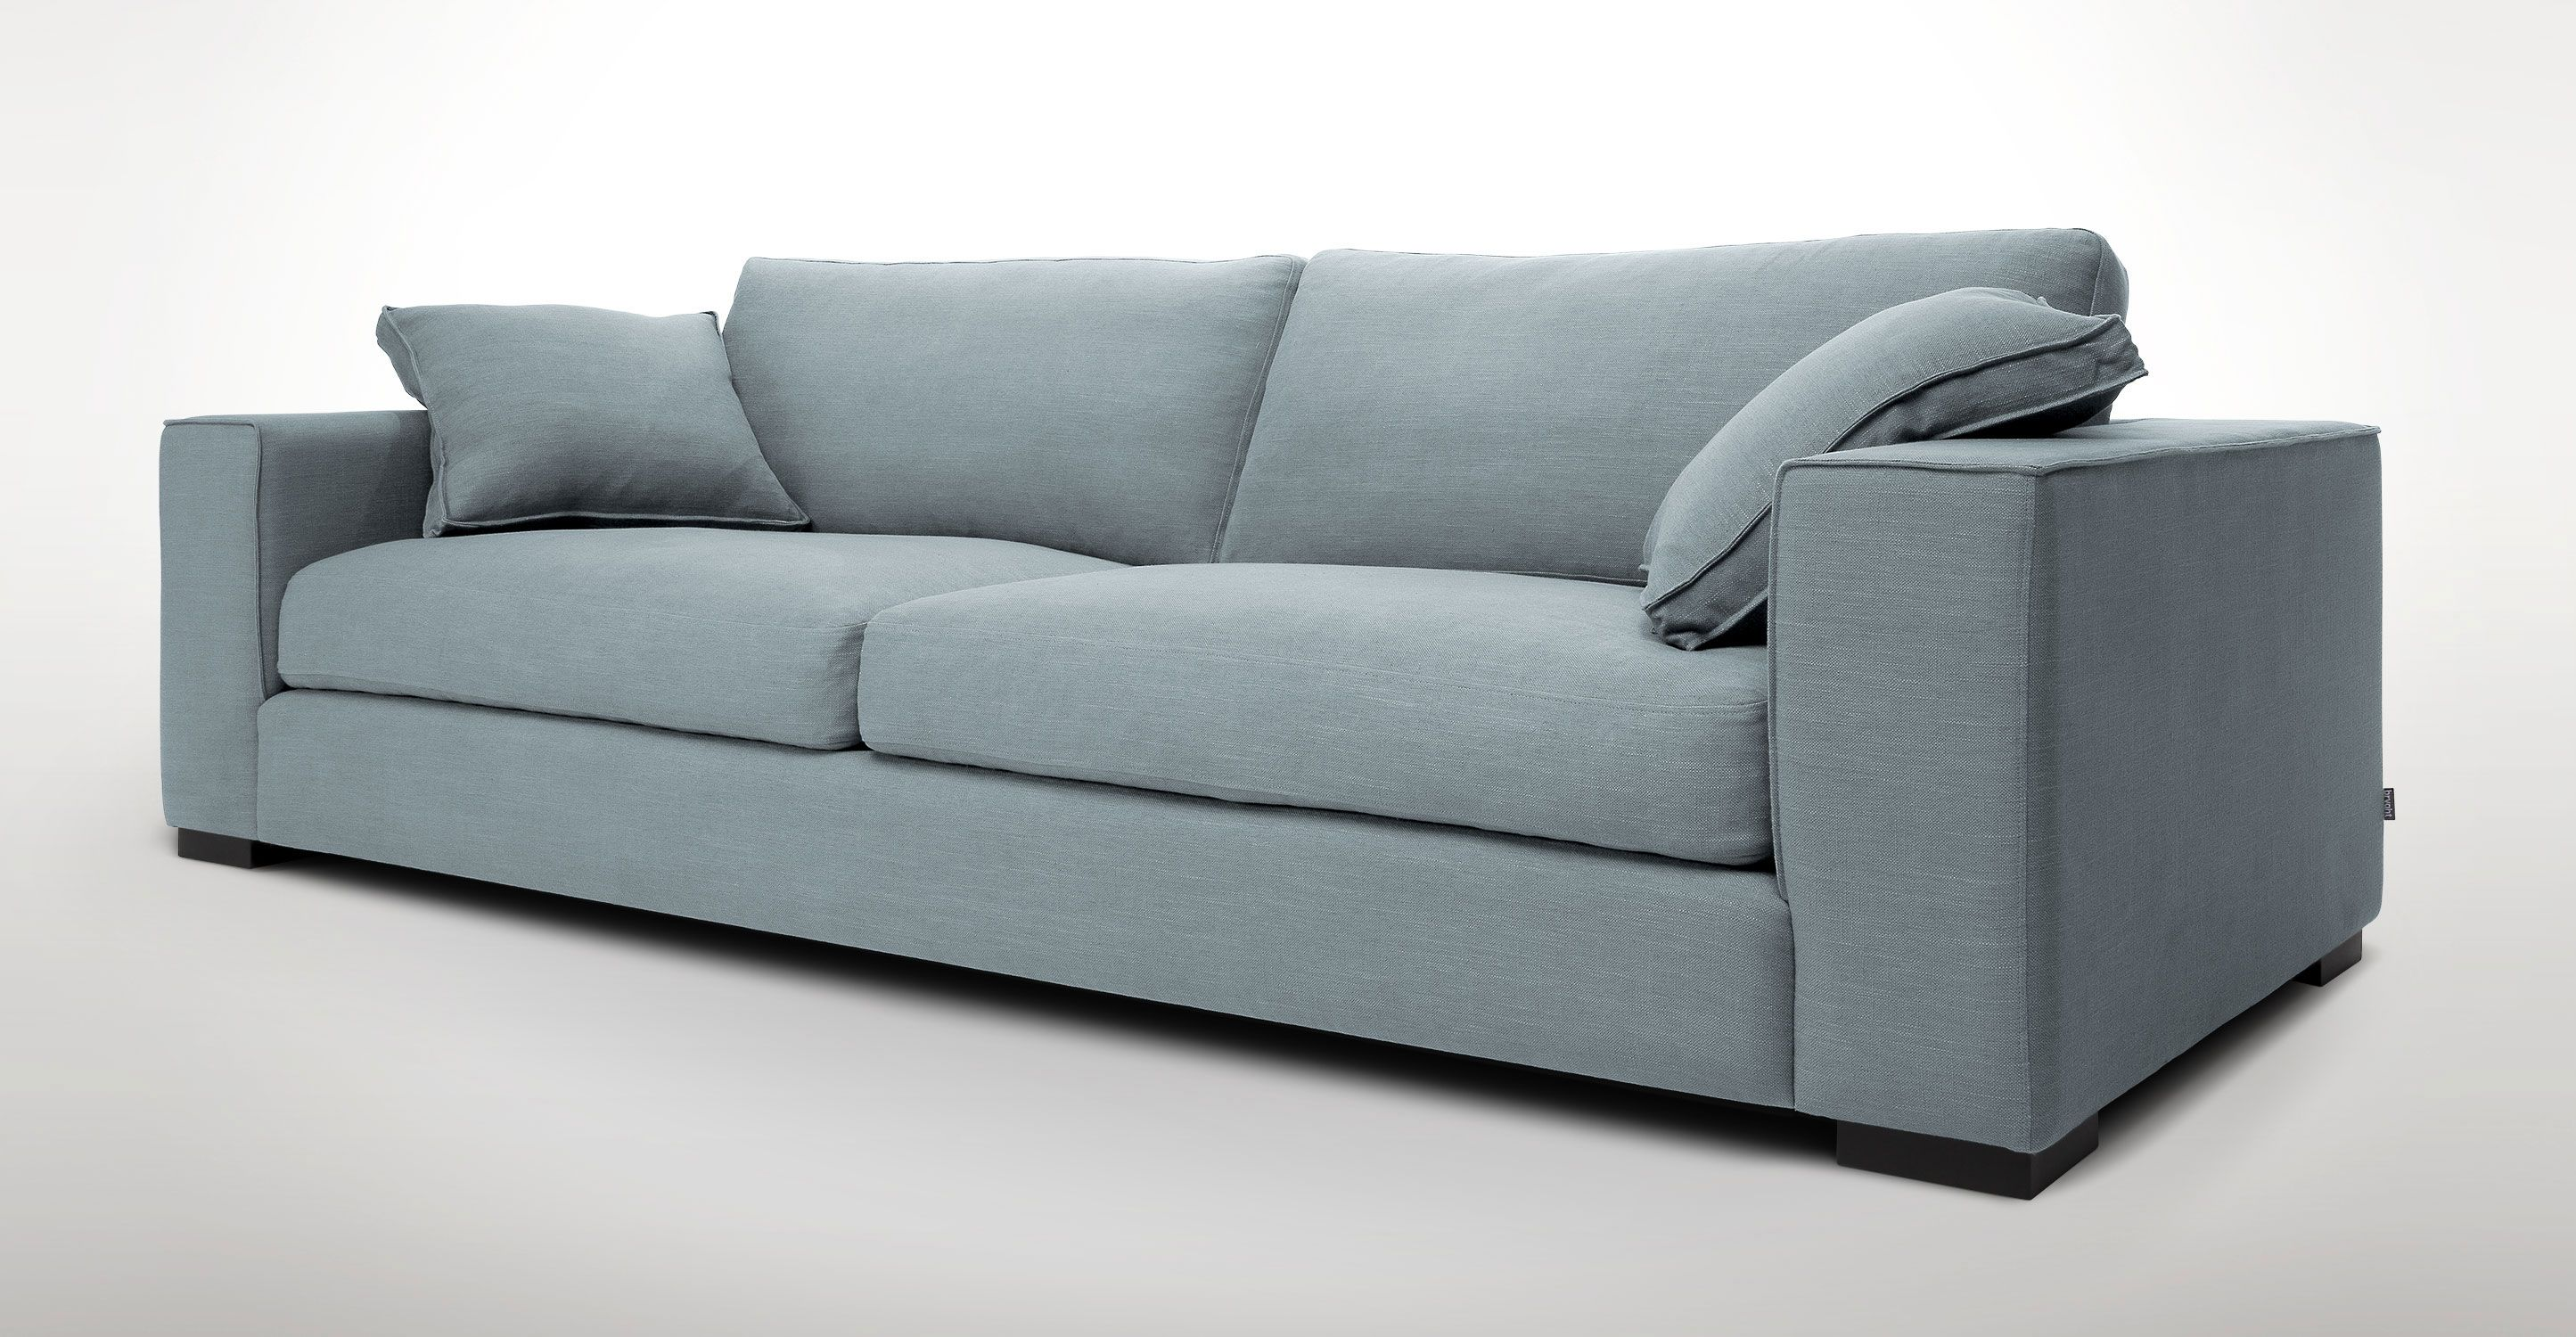 Blue Sofa With Solid Wood Legs | Article Stika Modern Furniture